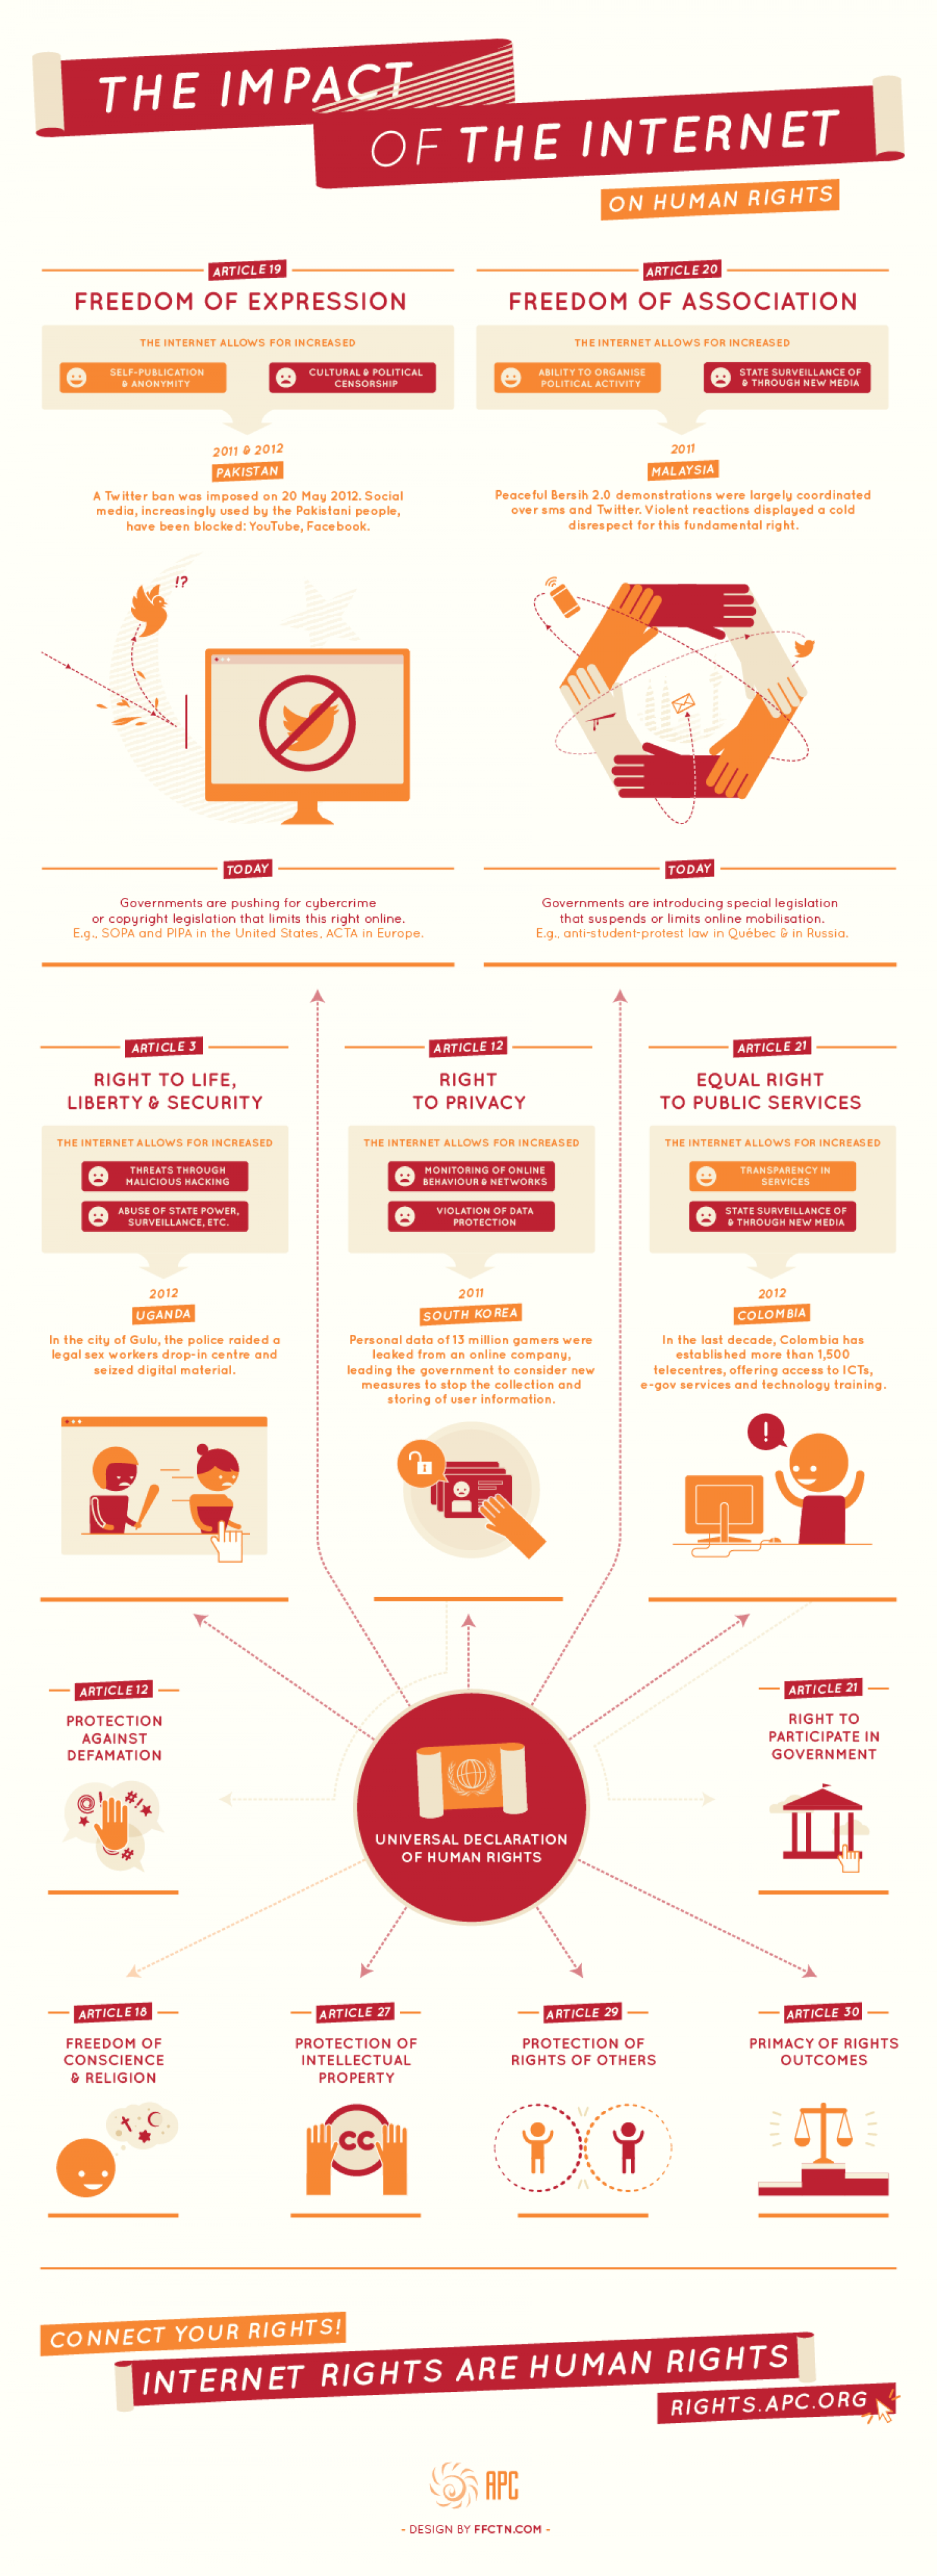 The impact of the Internet on Human Rights Infographic